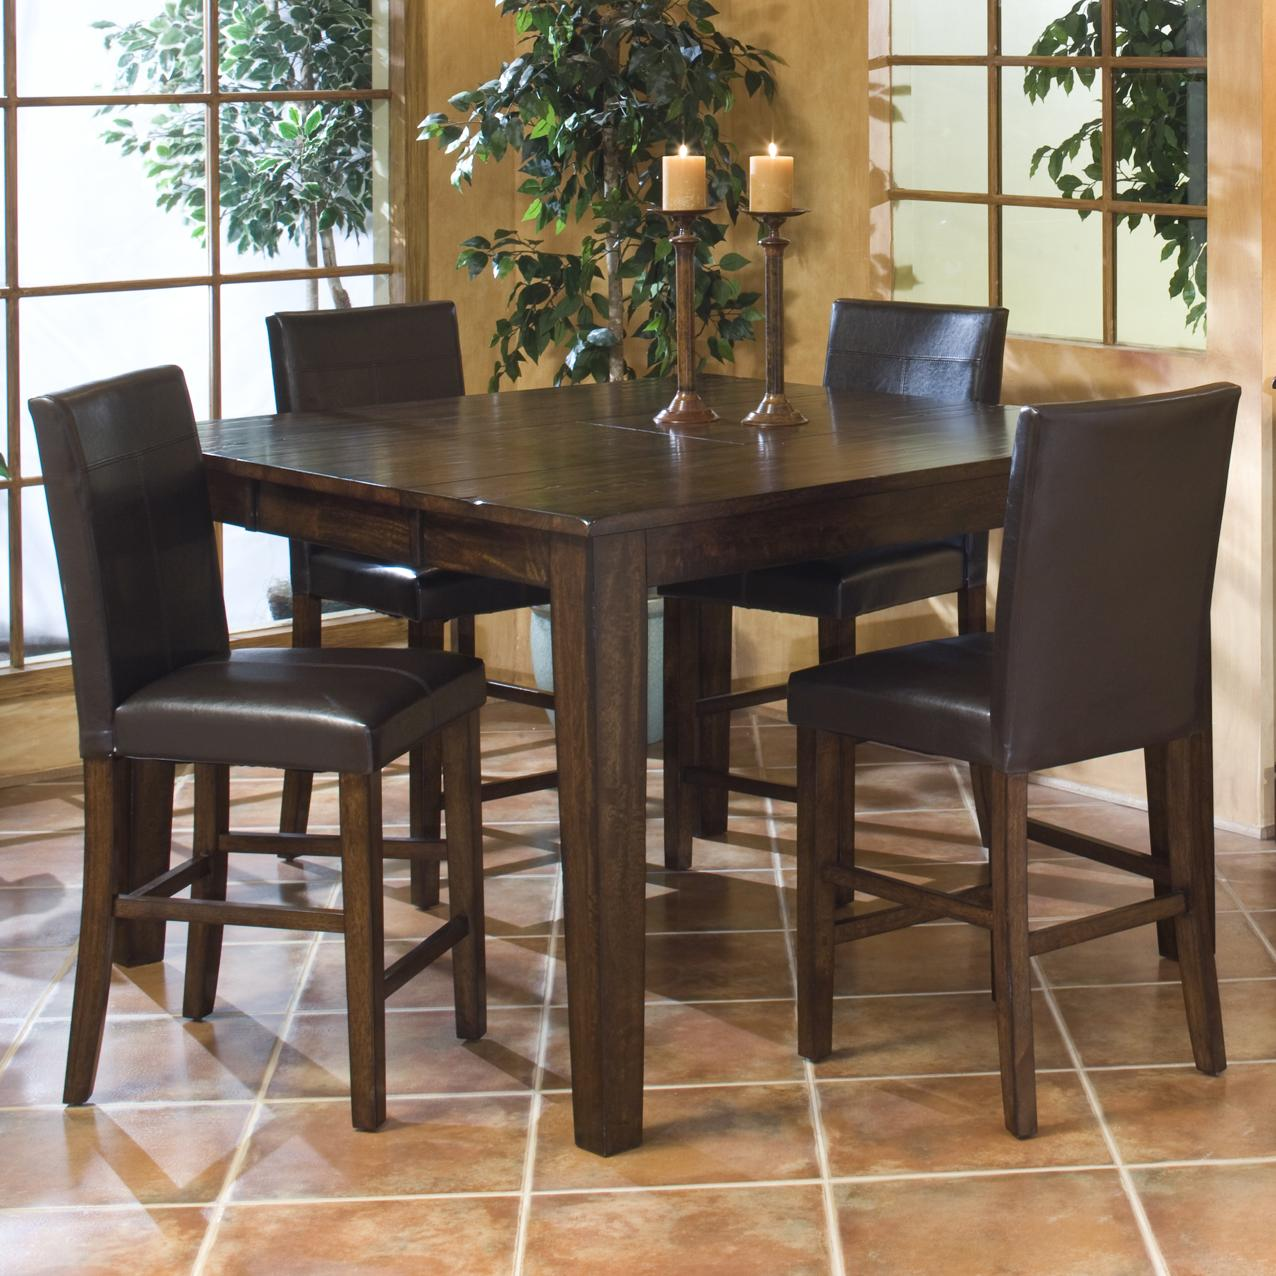 Cabin Creek Gathering Table with Parson's Barstools by Belfort Select at Belfort Furniture